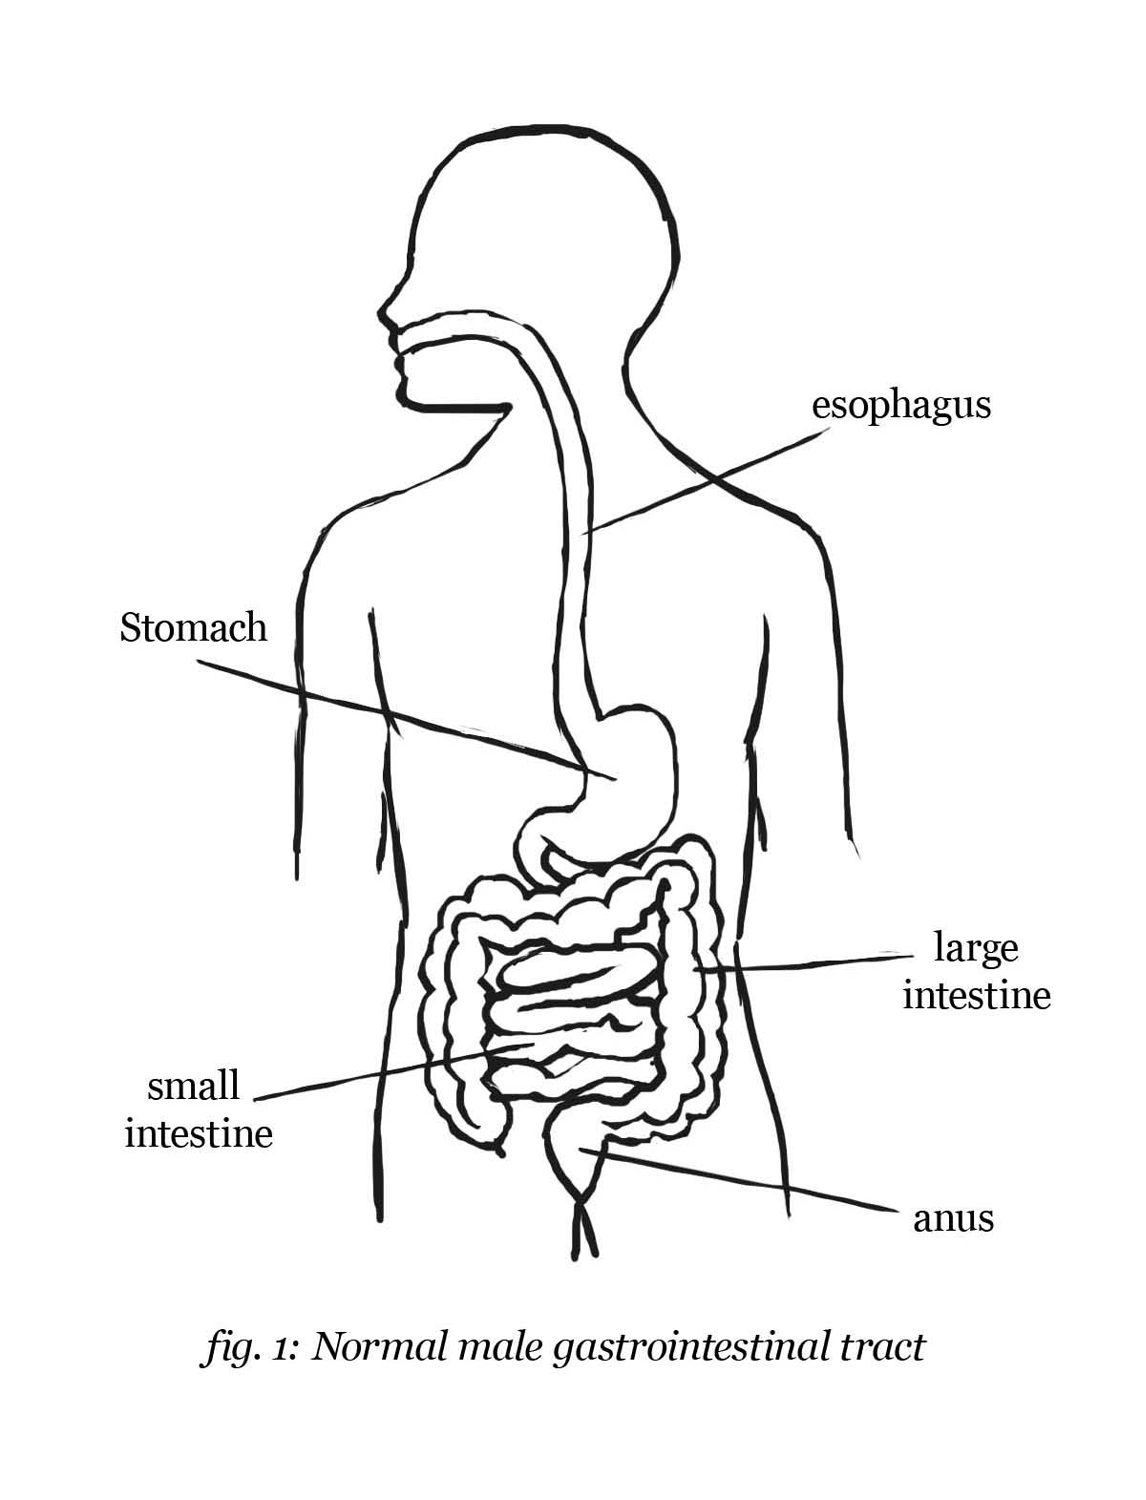 Worksheet On The Human Digestive System